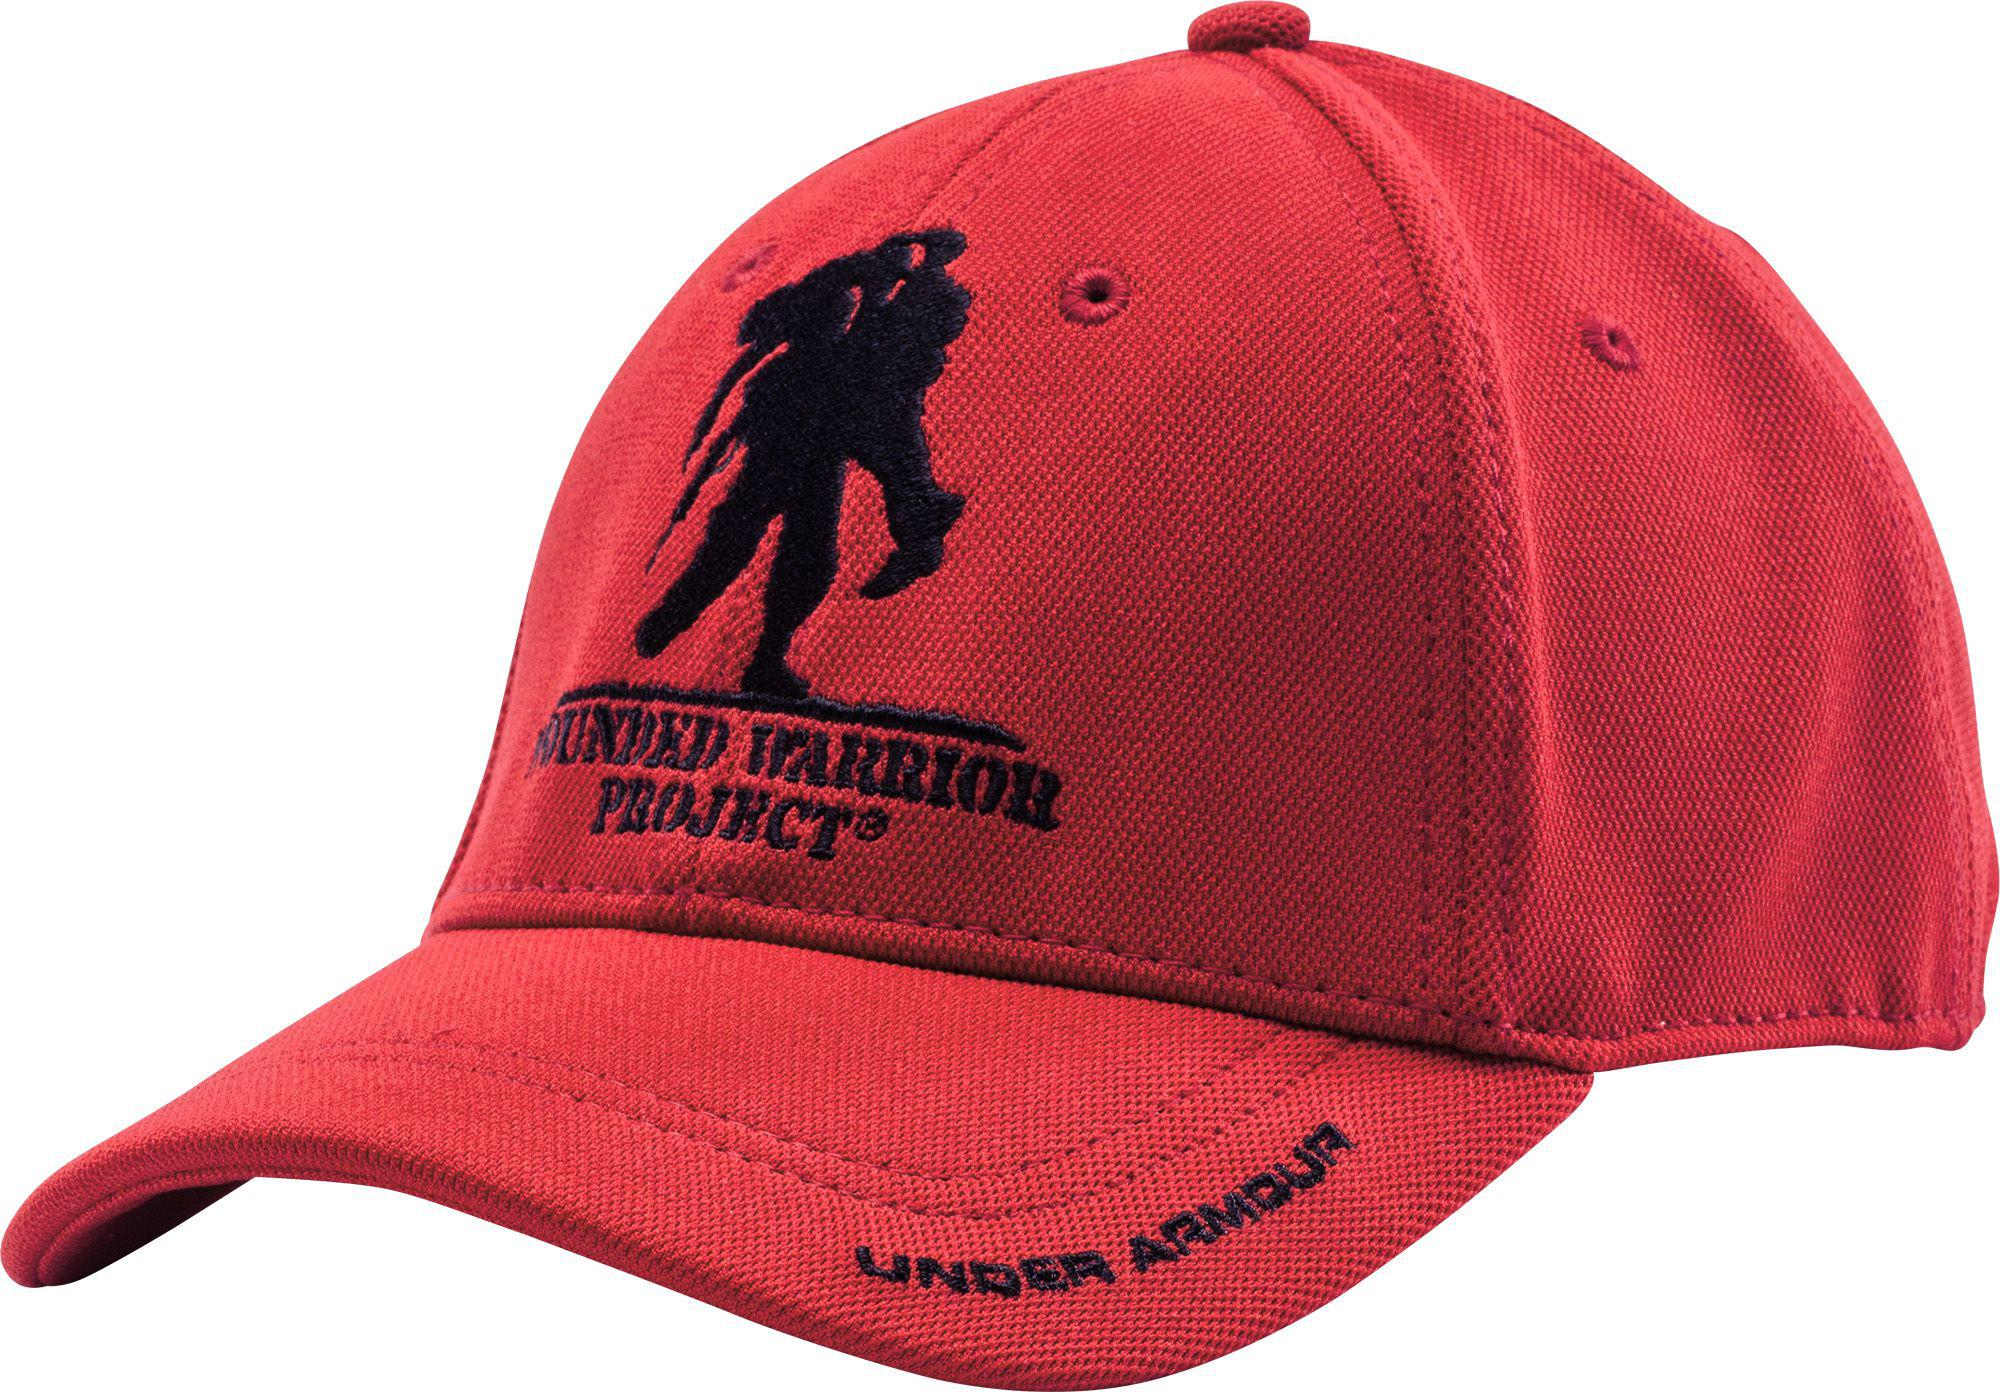 Lyst - Under Armour Wounded Warrior Project Snapback Hat in Red for Men 9761bc319910